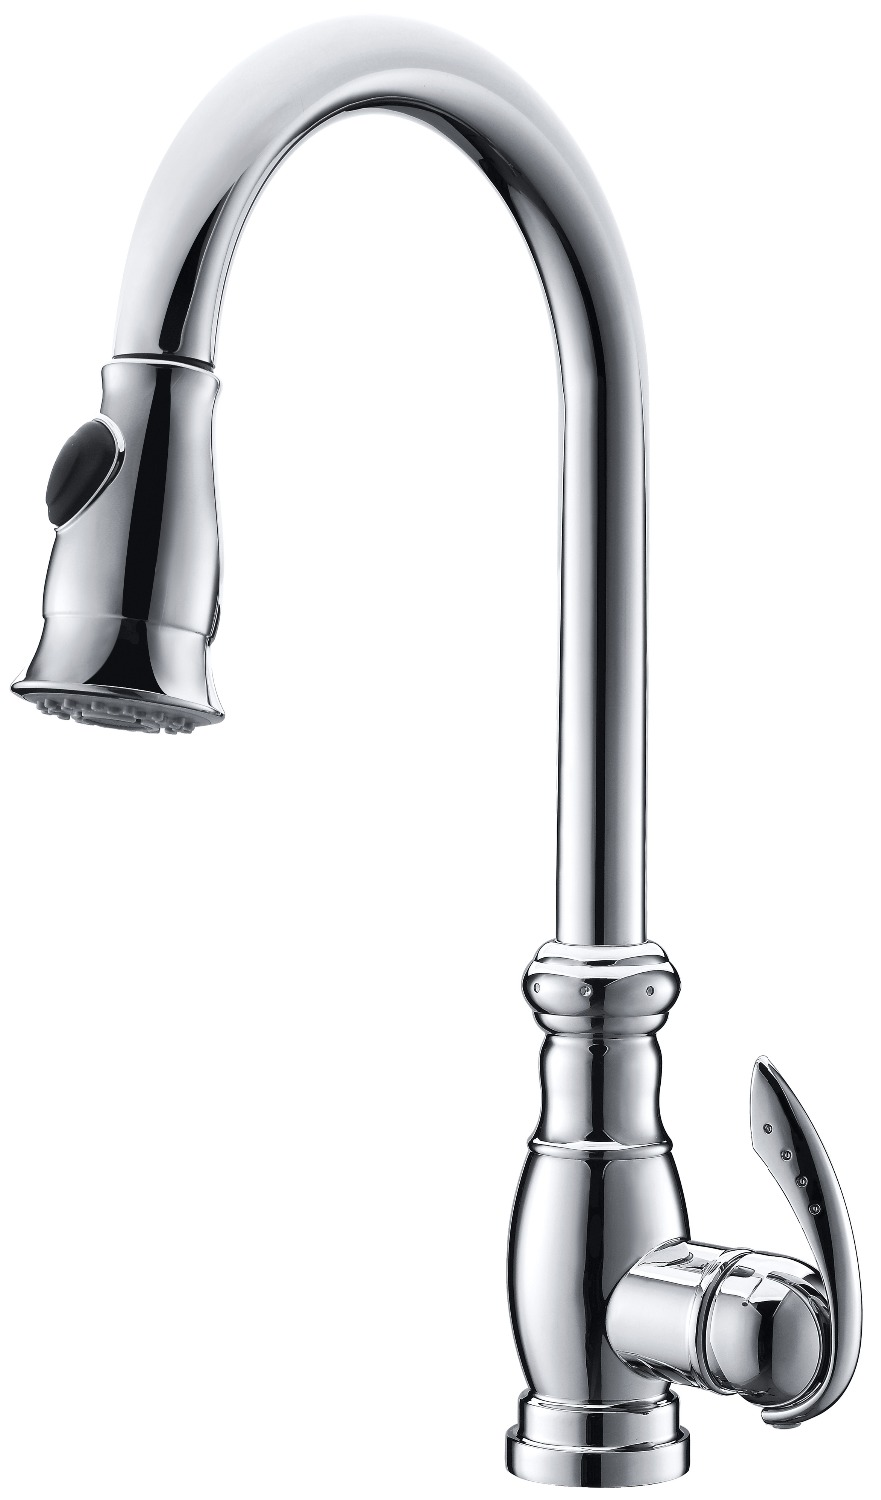 Free ship 2016 NEW DESIGN Chrome clour pull out kitchen spray faucet mixer tap Single hole